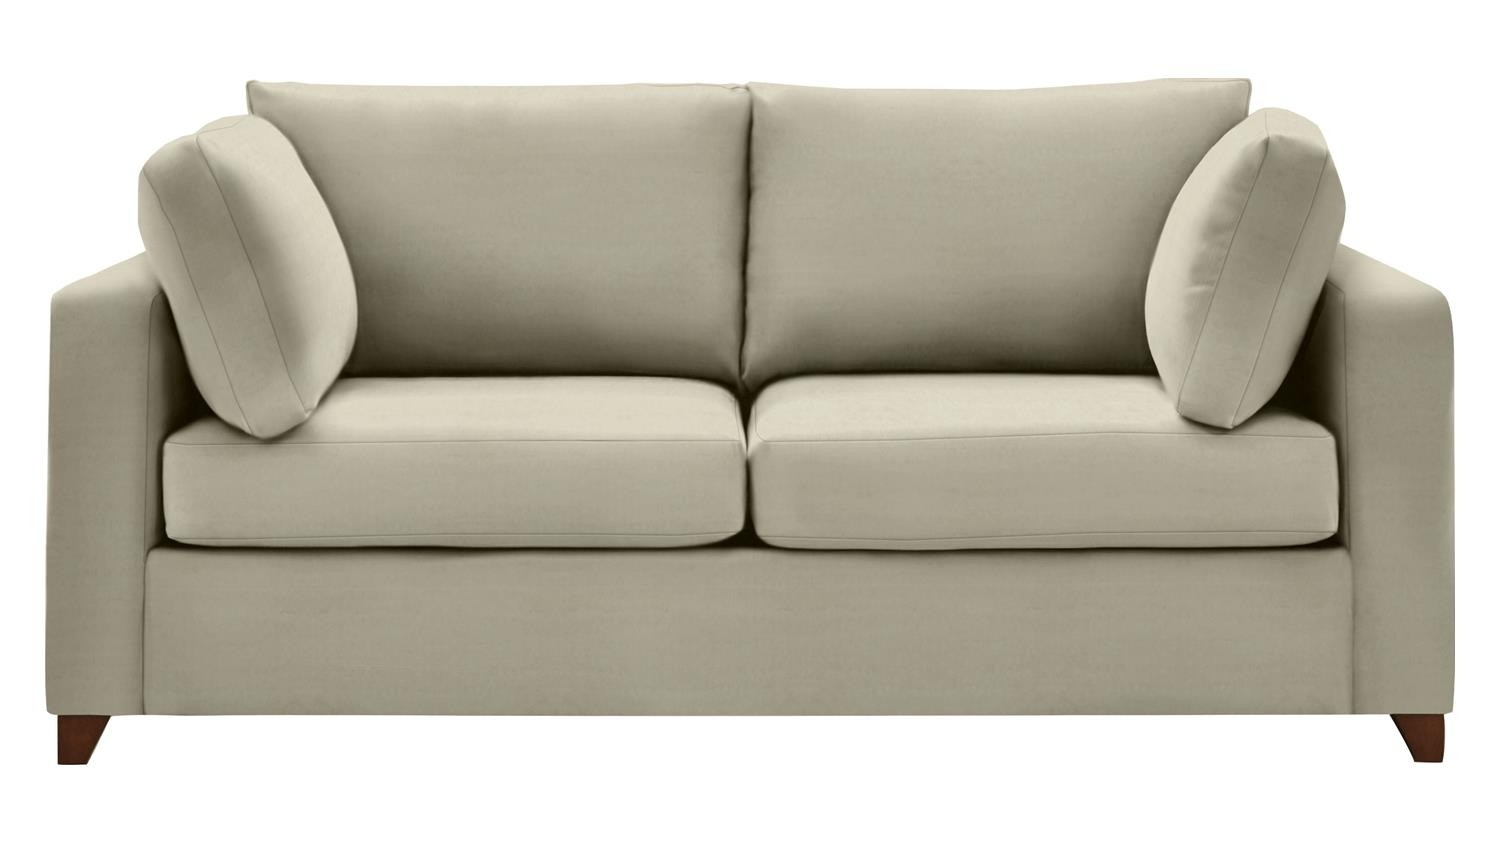 The Somerton 2 Seater Sofa Bed